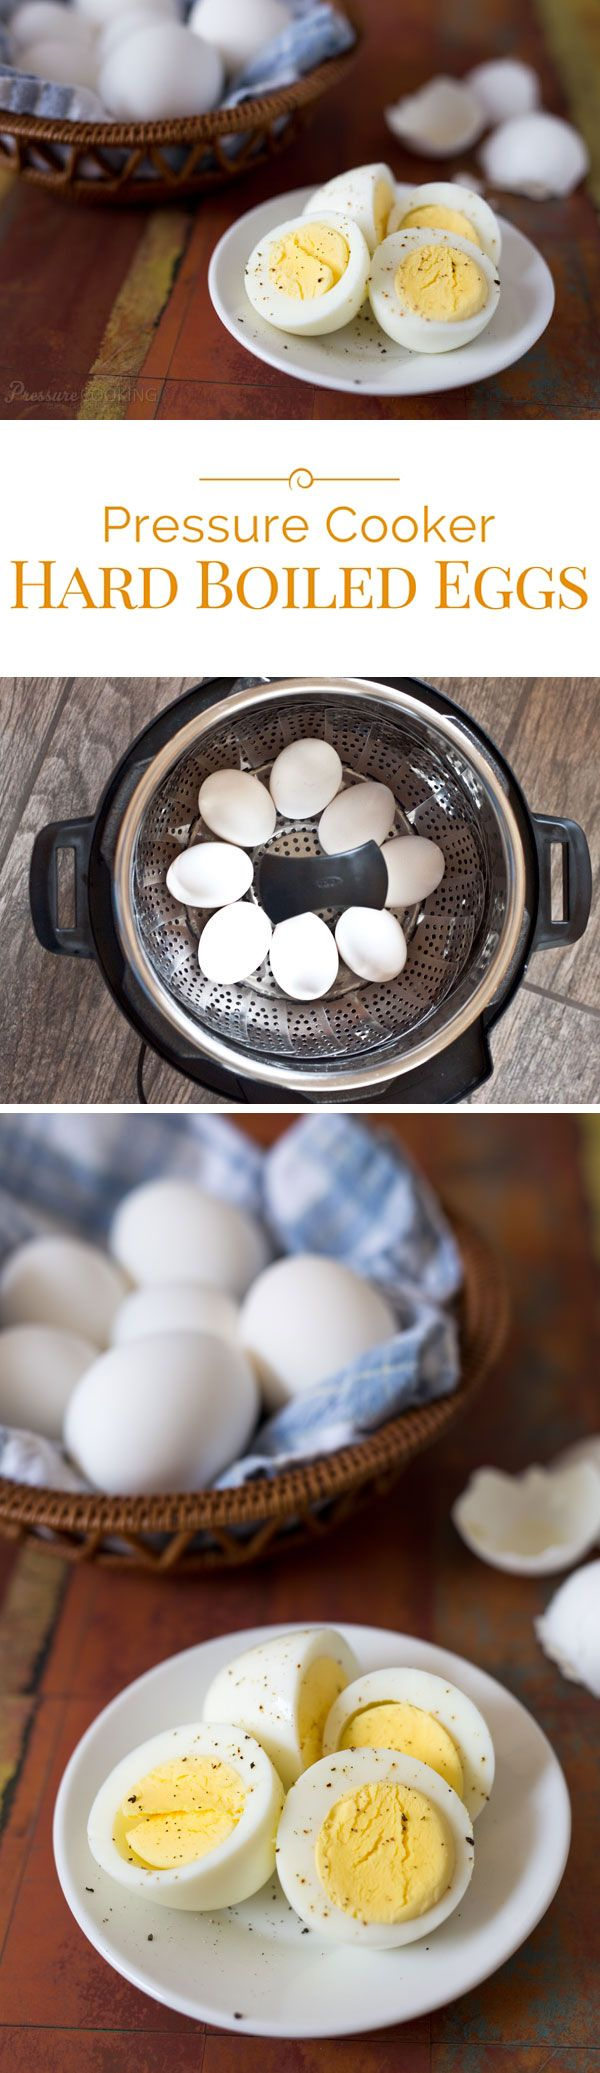 Pressure cooking is the best way to cook hard boiled eggs. It's quick, easy, your eggs will be perfectly cooked, and amazingly easy to peel.